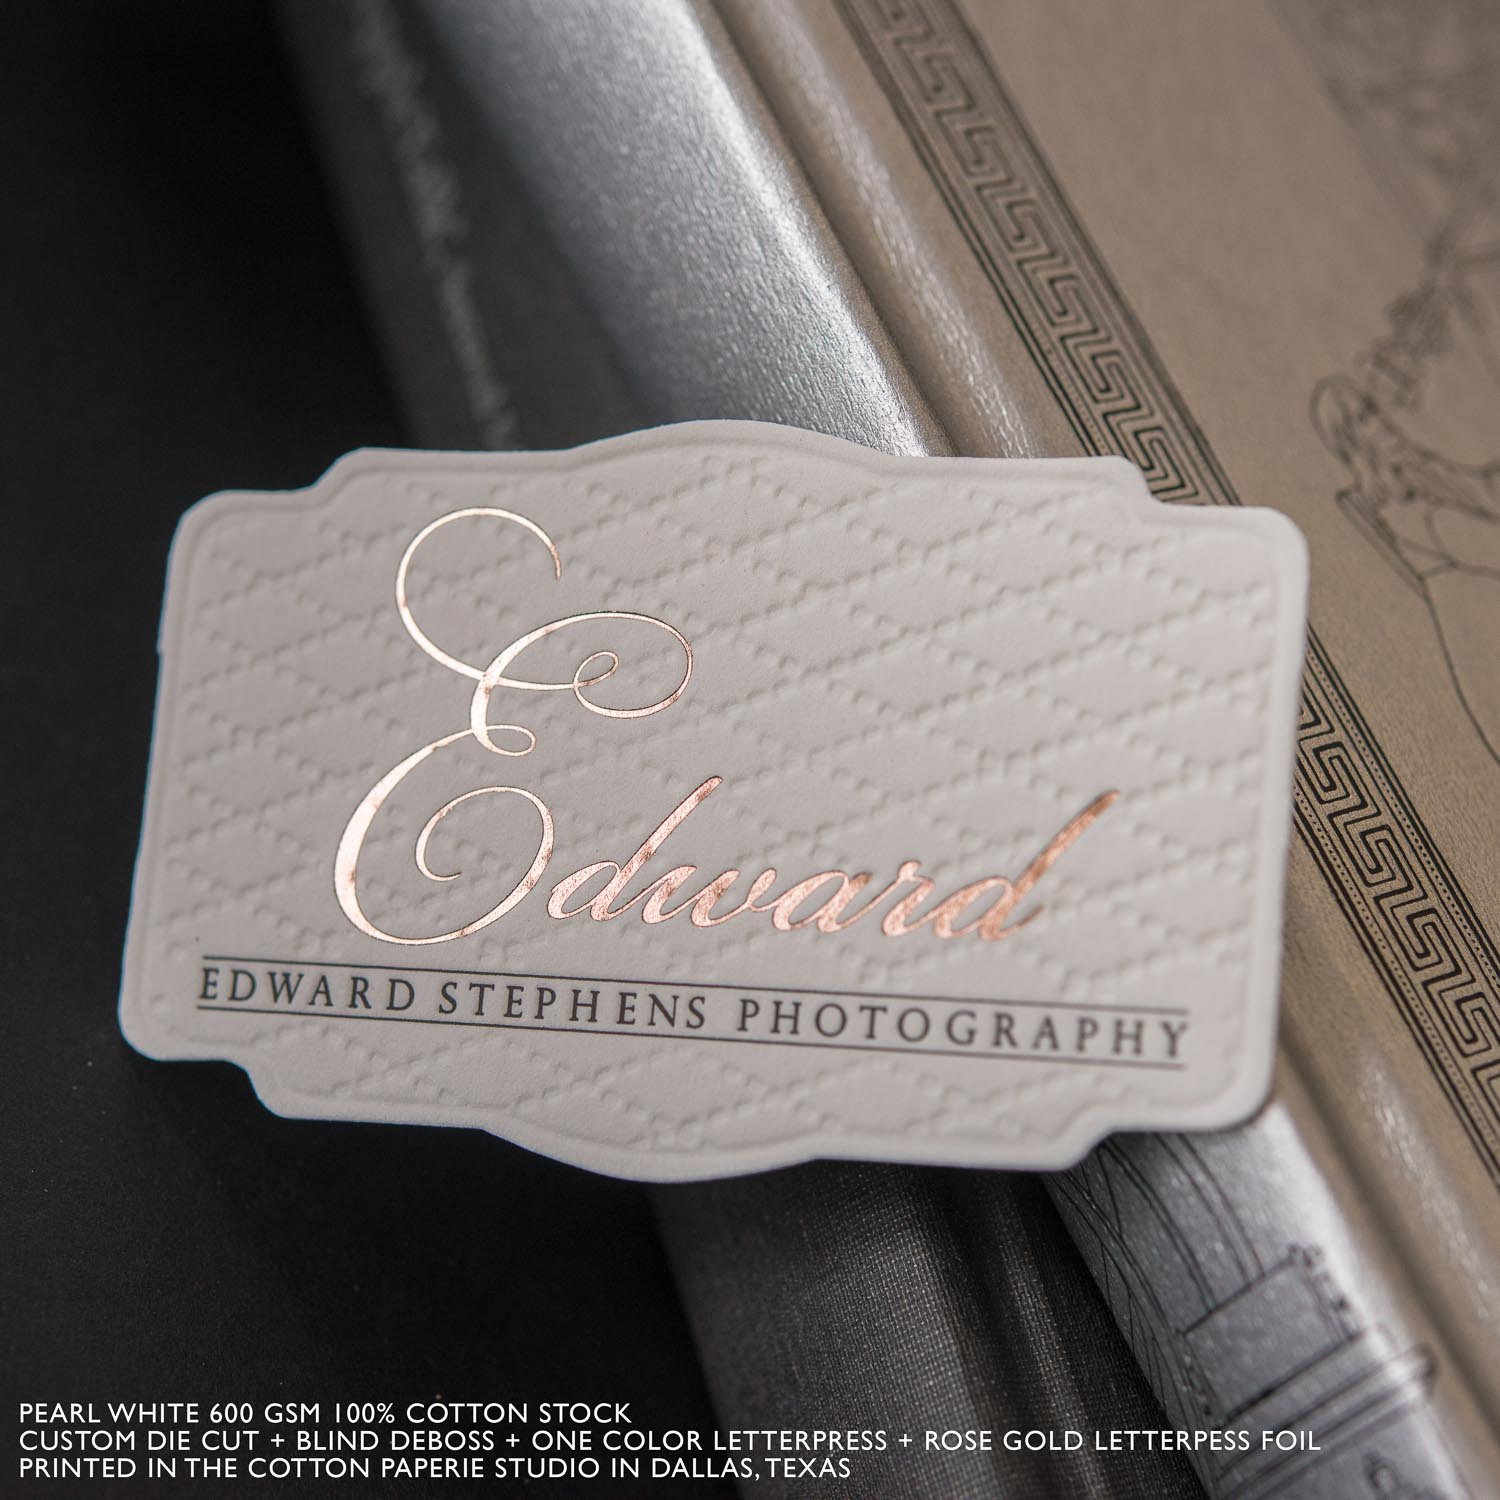 Letter press business card akbaeenw letter press business card reheart Images